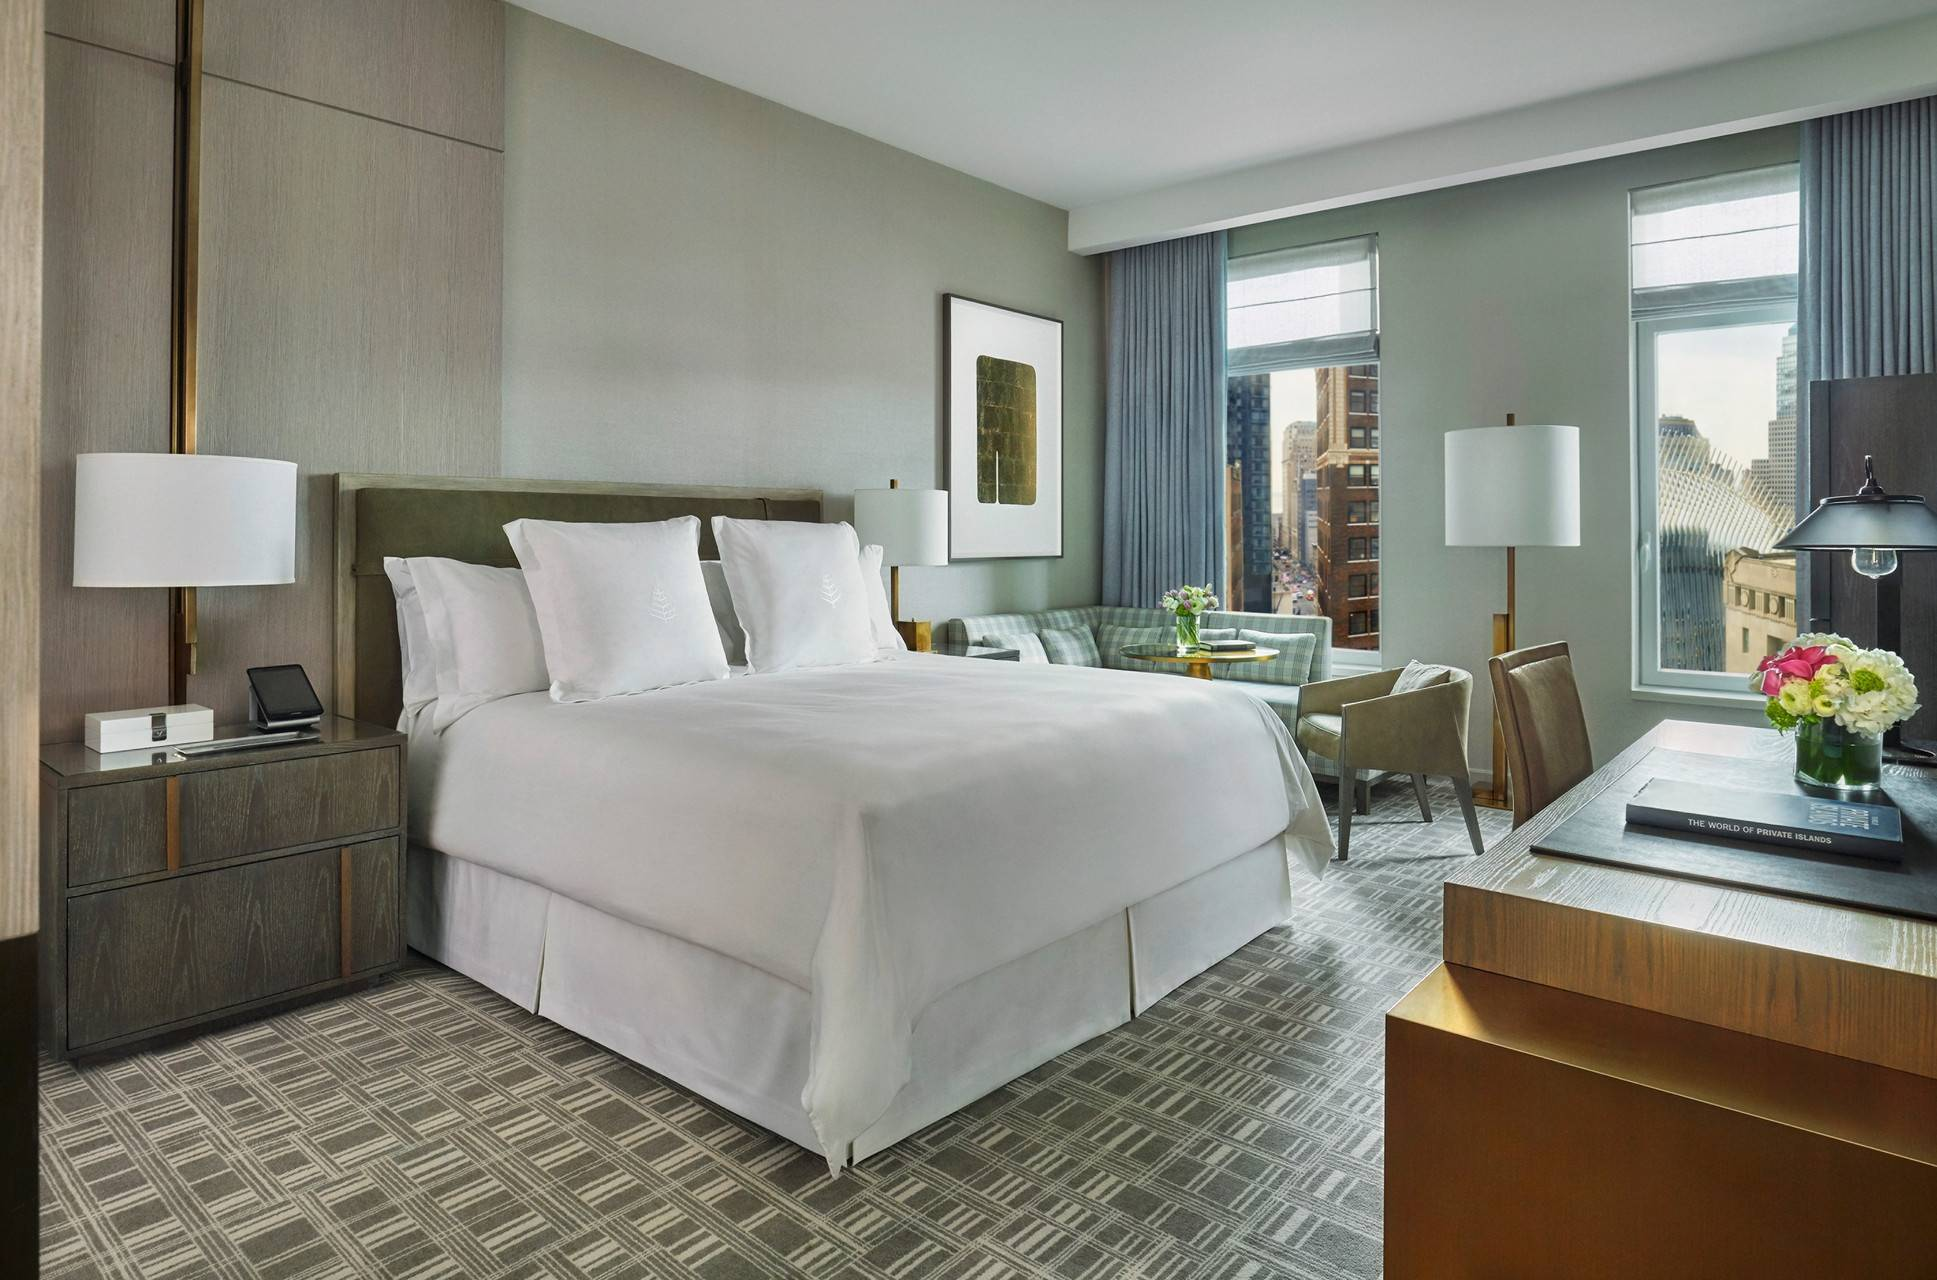 Four Seasons Hotel New York Downtown New York New York At Hrs With Free Services